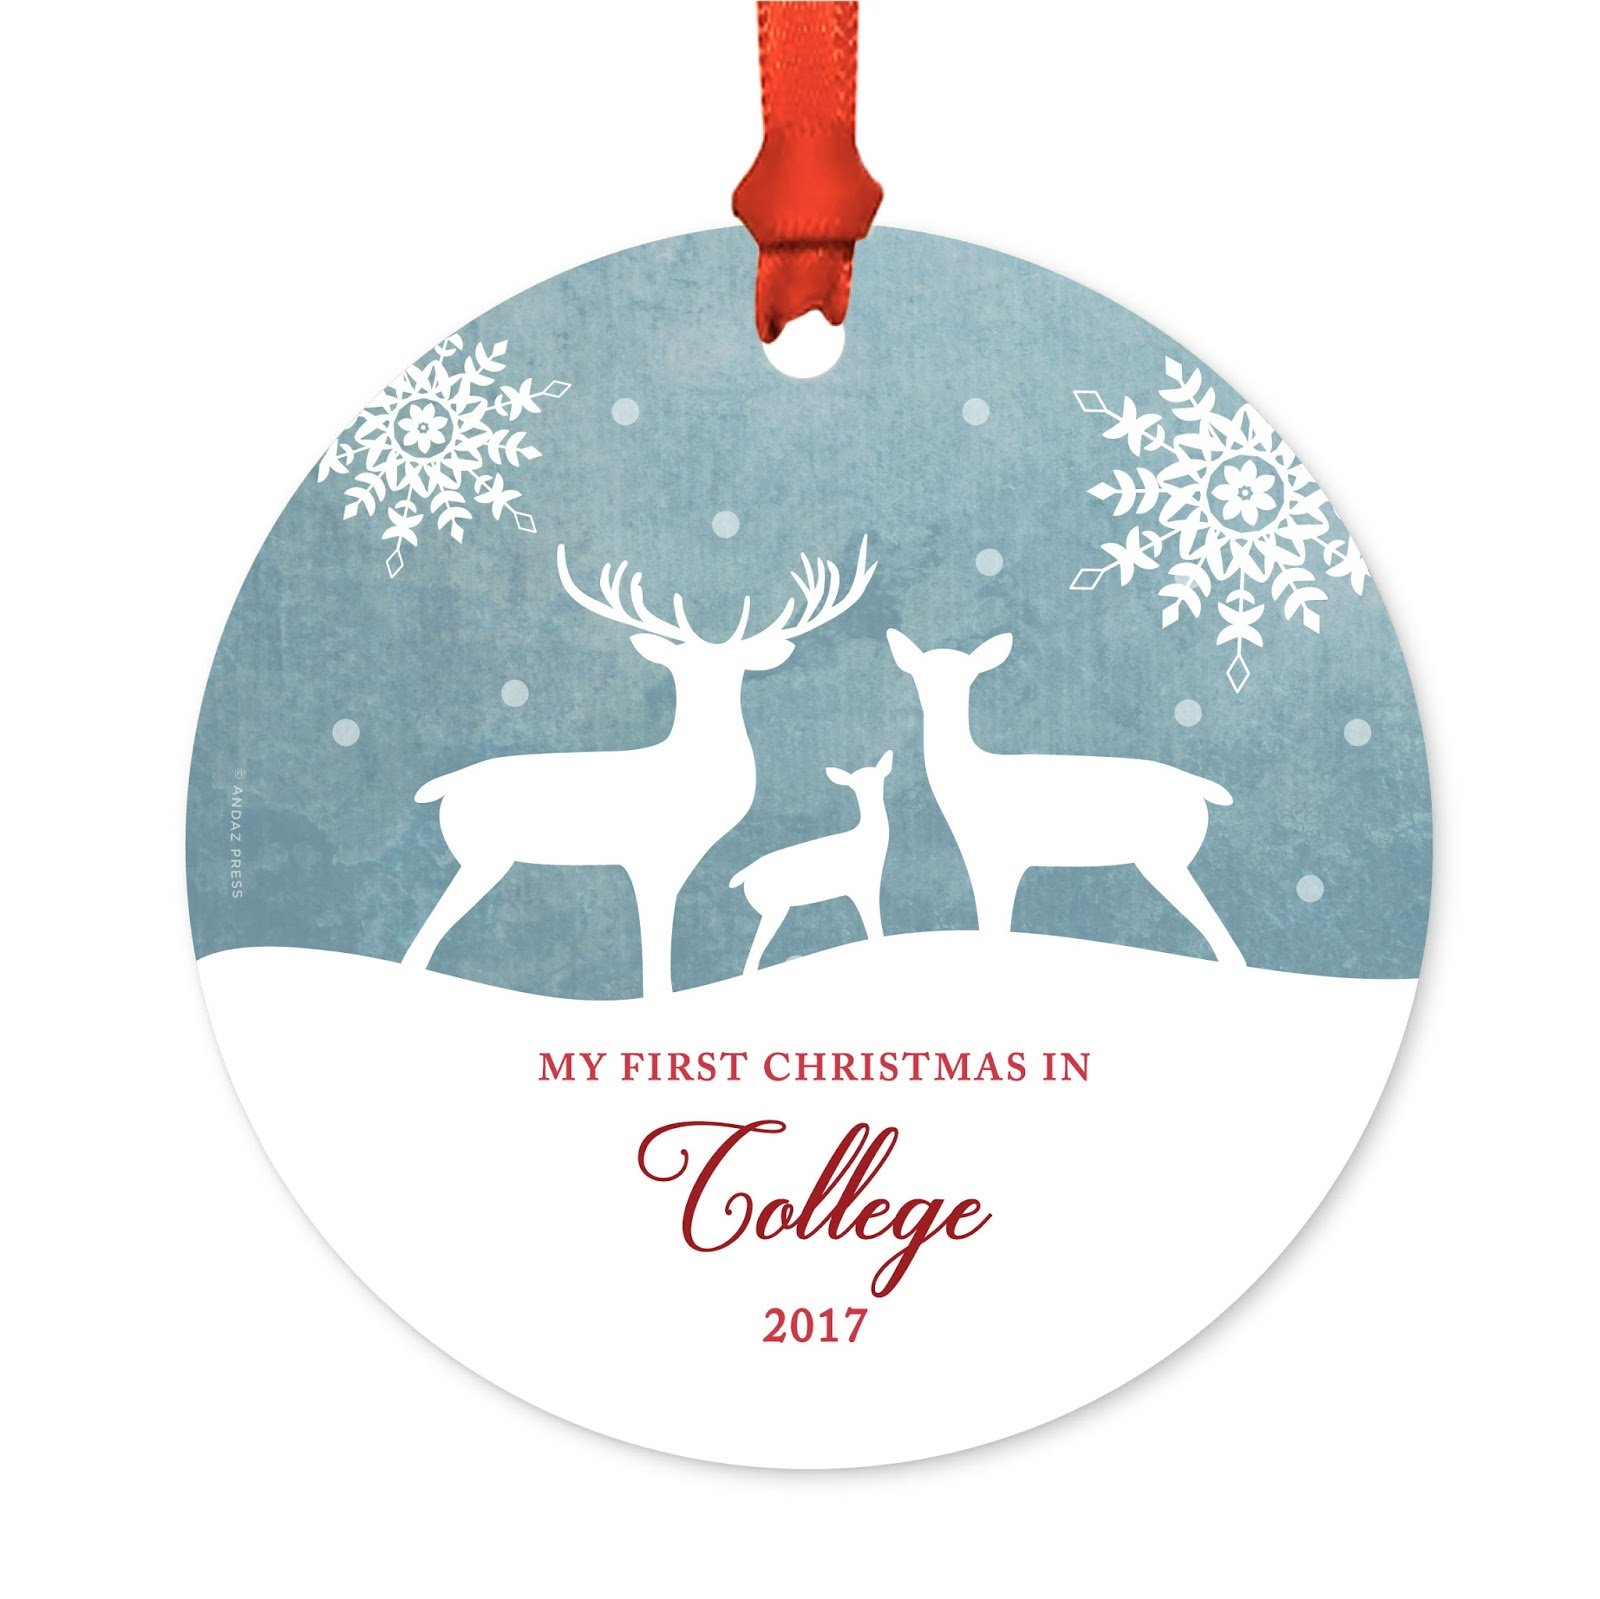 Andaz Press Graduation University Student Metal Christmas Ornament, My First Christmas in College 2018, Rustic Deer Winter Snowflakes, 1-Pack, Includes Ribbon and Gift Bag